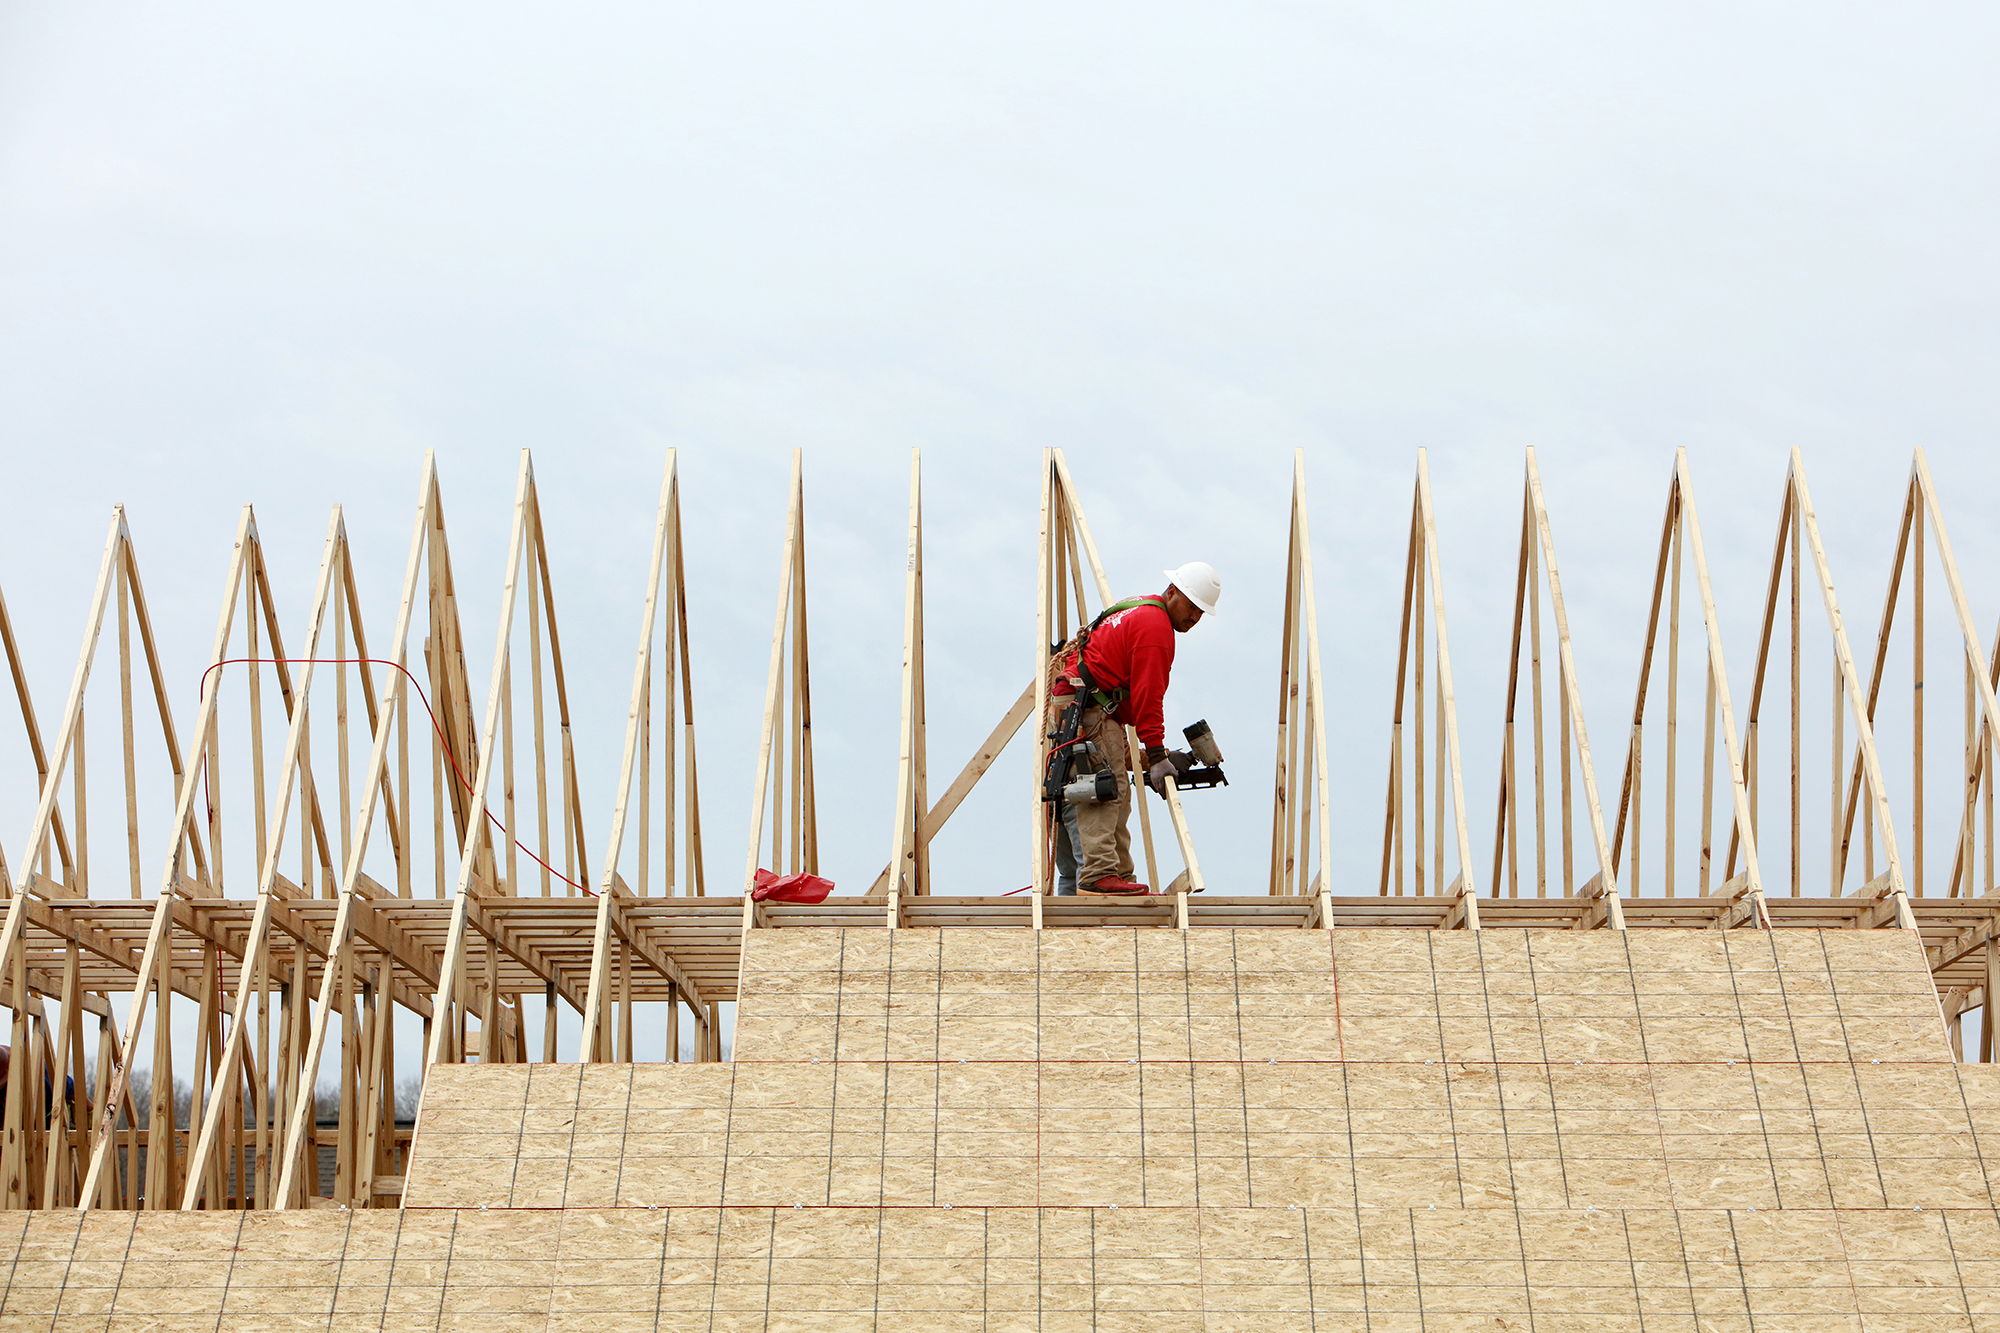 Top builder says the housing boom isn't over just yet